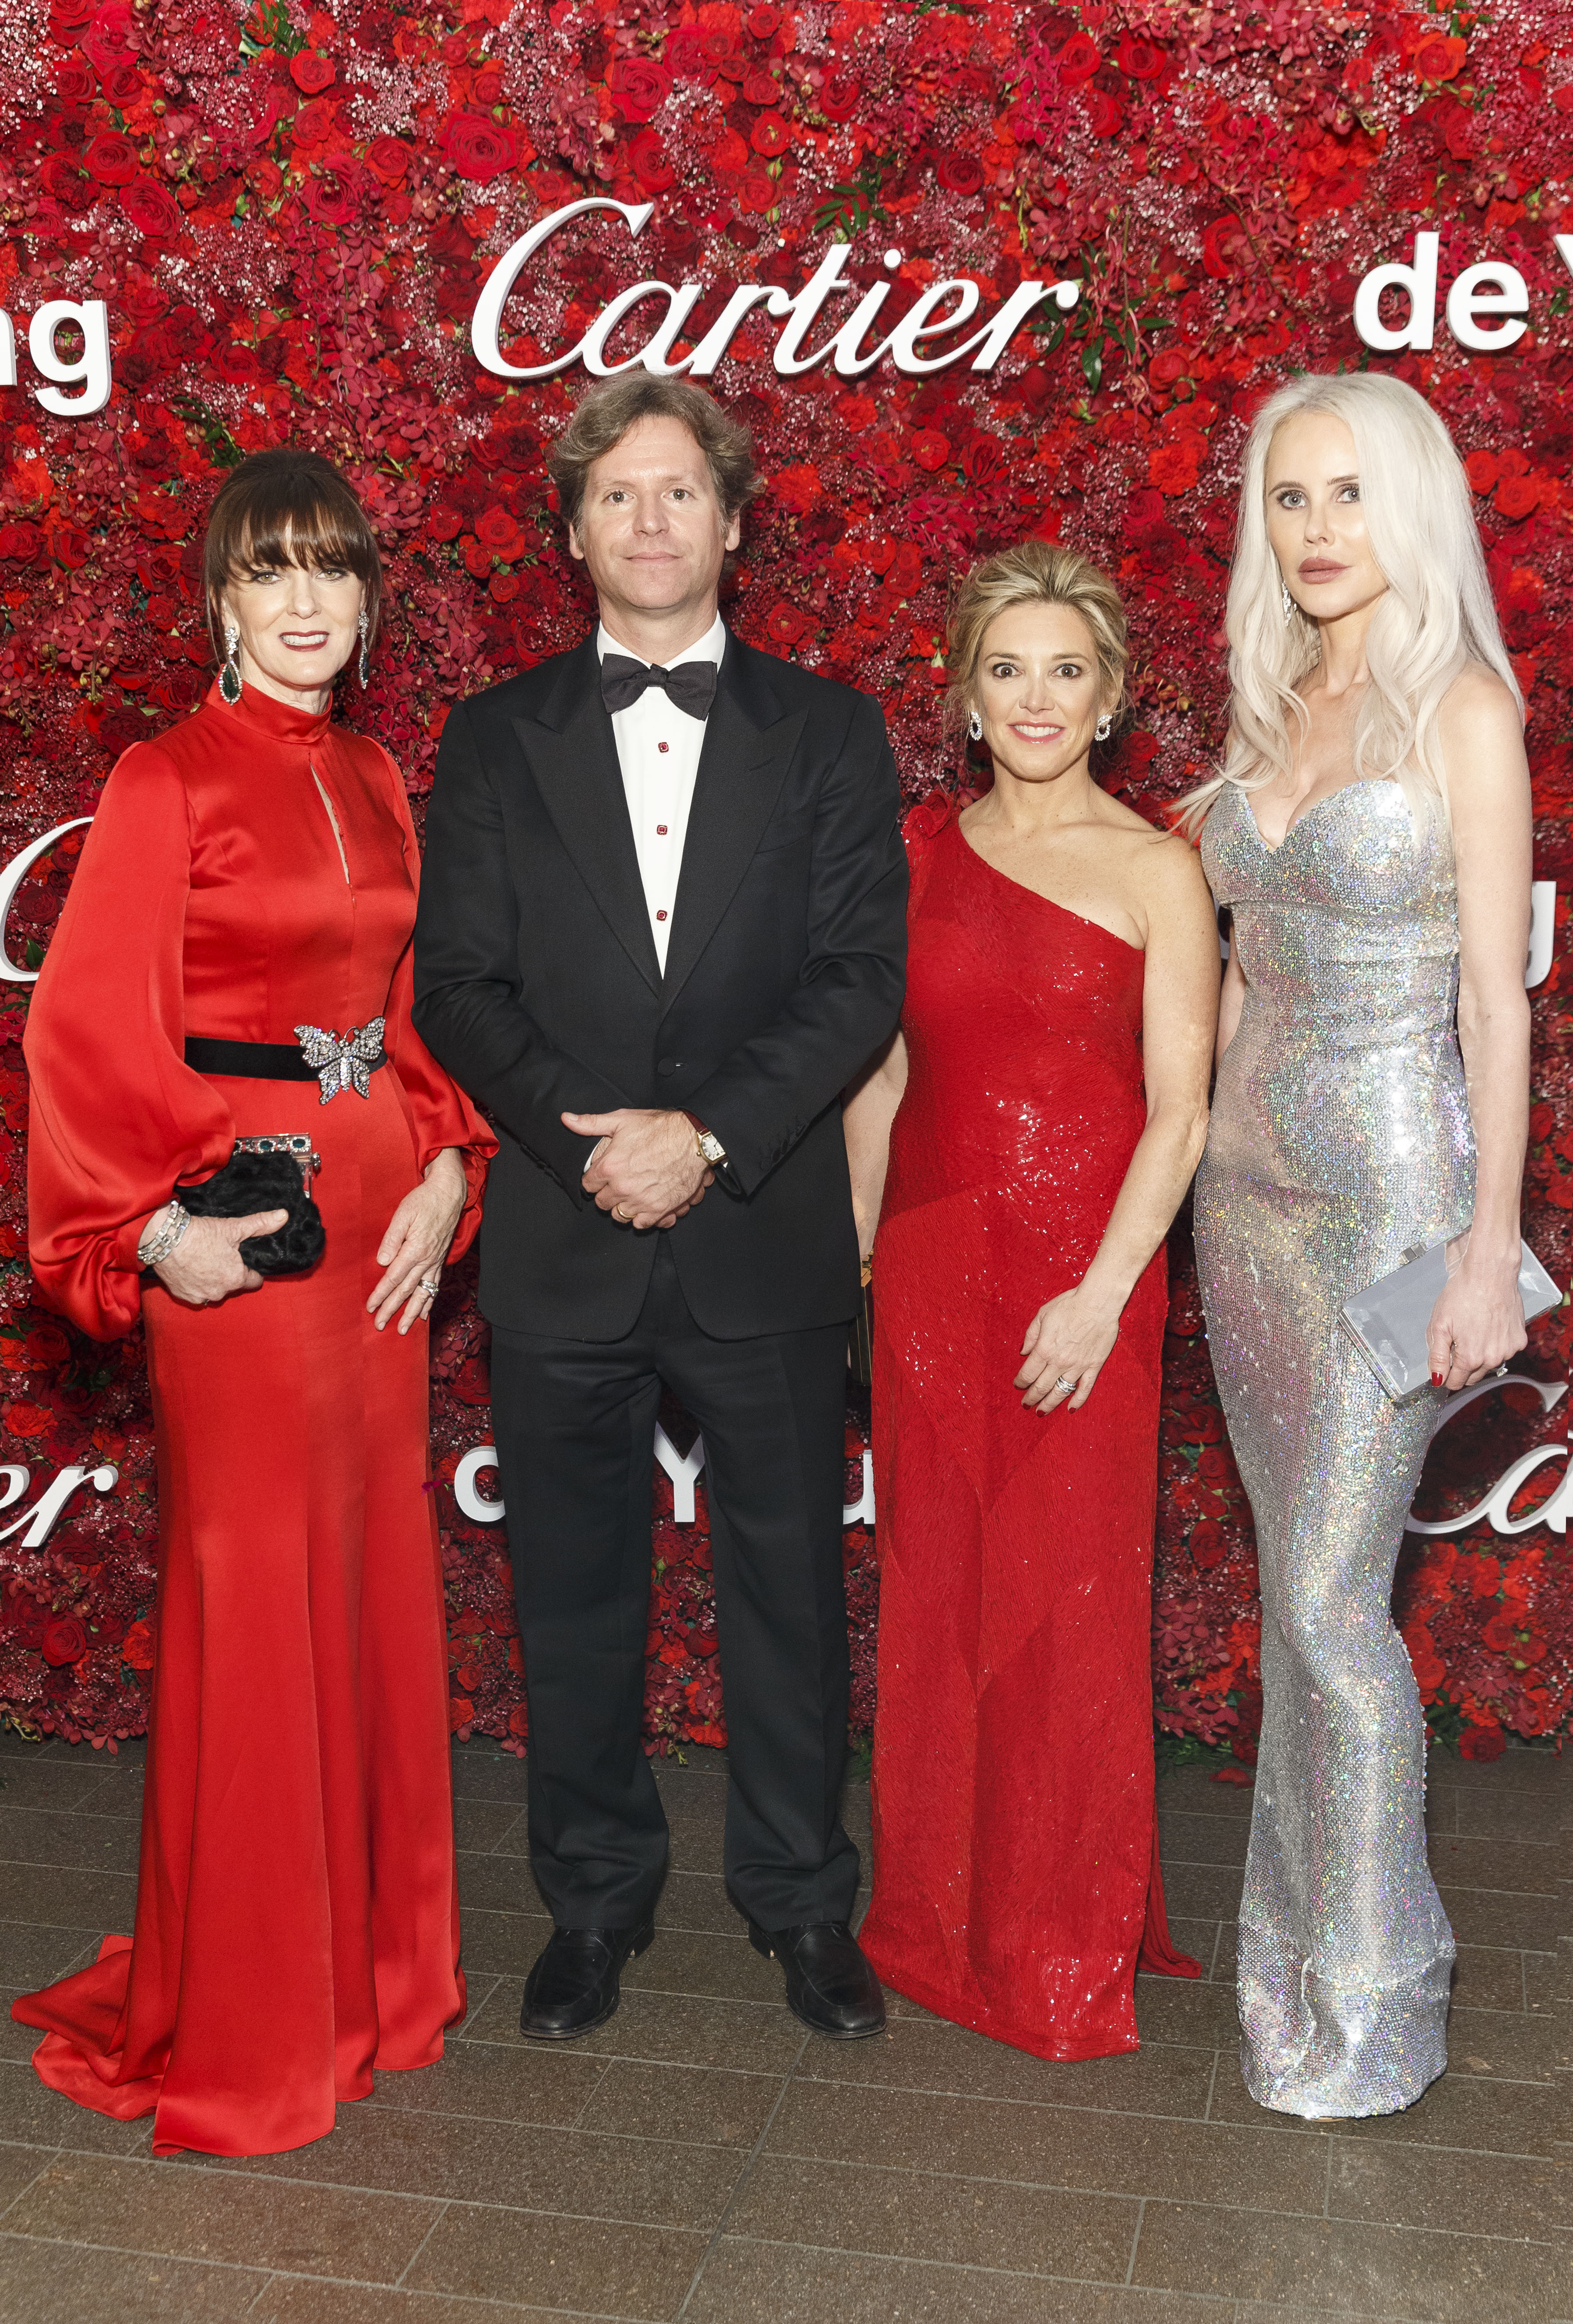 Allison Speer, Trevor Traina, Kathryn Lasater and Vanessa Getty attend Mid-Winter Gala 2018 Sponsored by CARTIER on April 6th 2018 at de Young Museum in San Francisco, CA (Photo - Devlin Shand for Drew Altizer Photography)